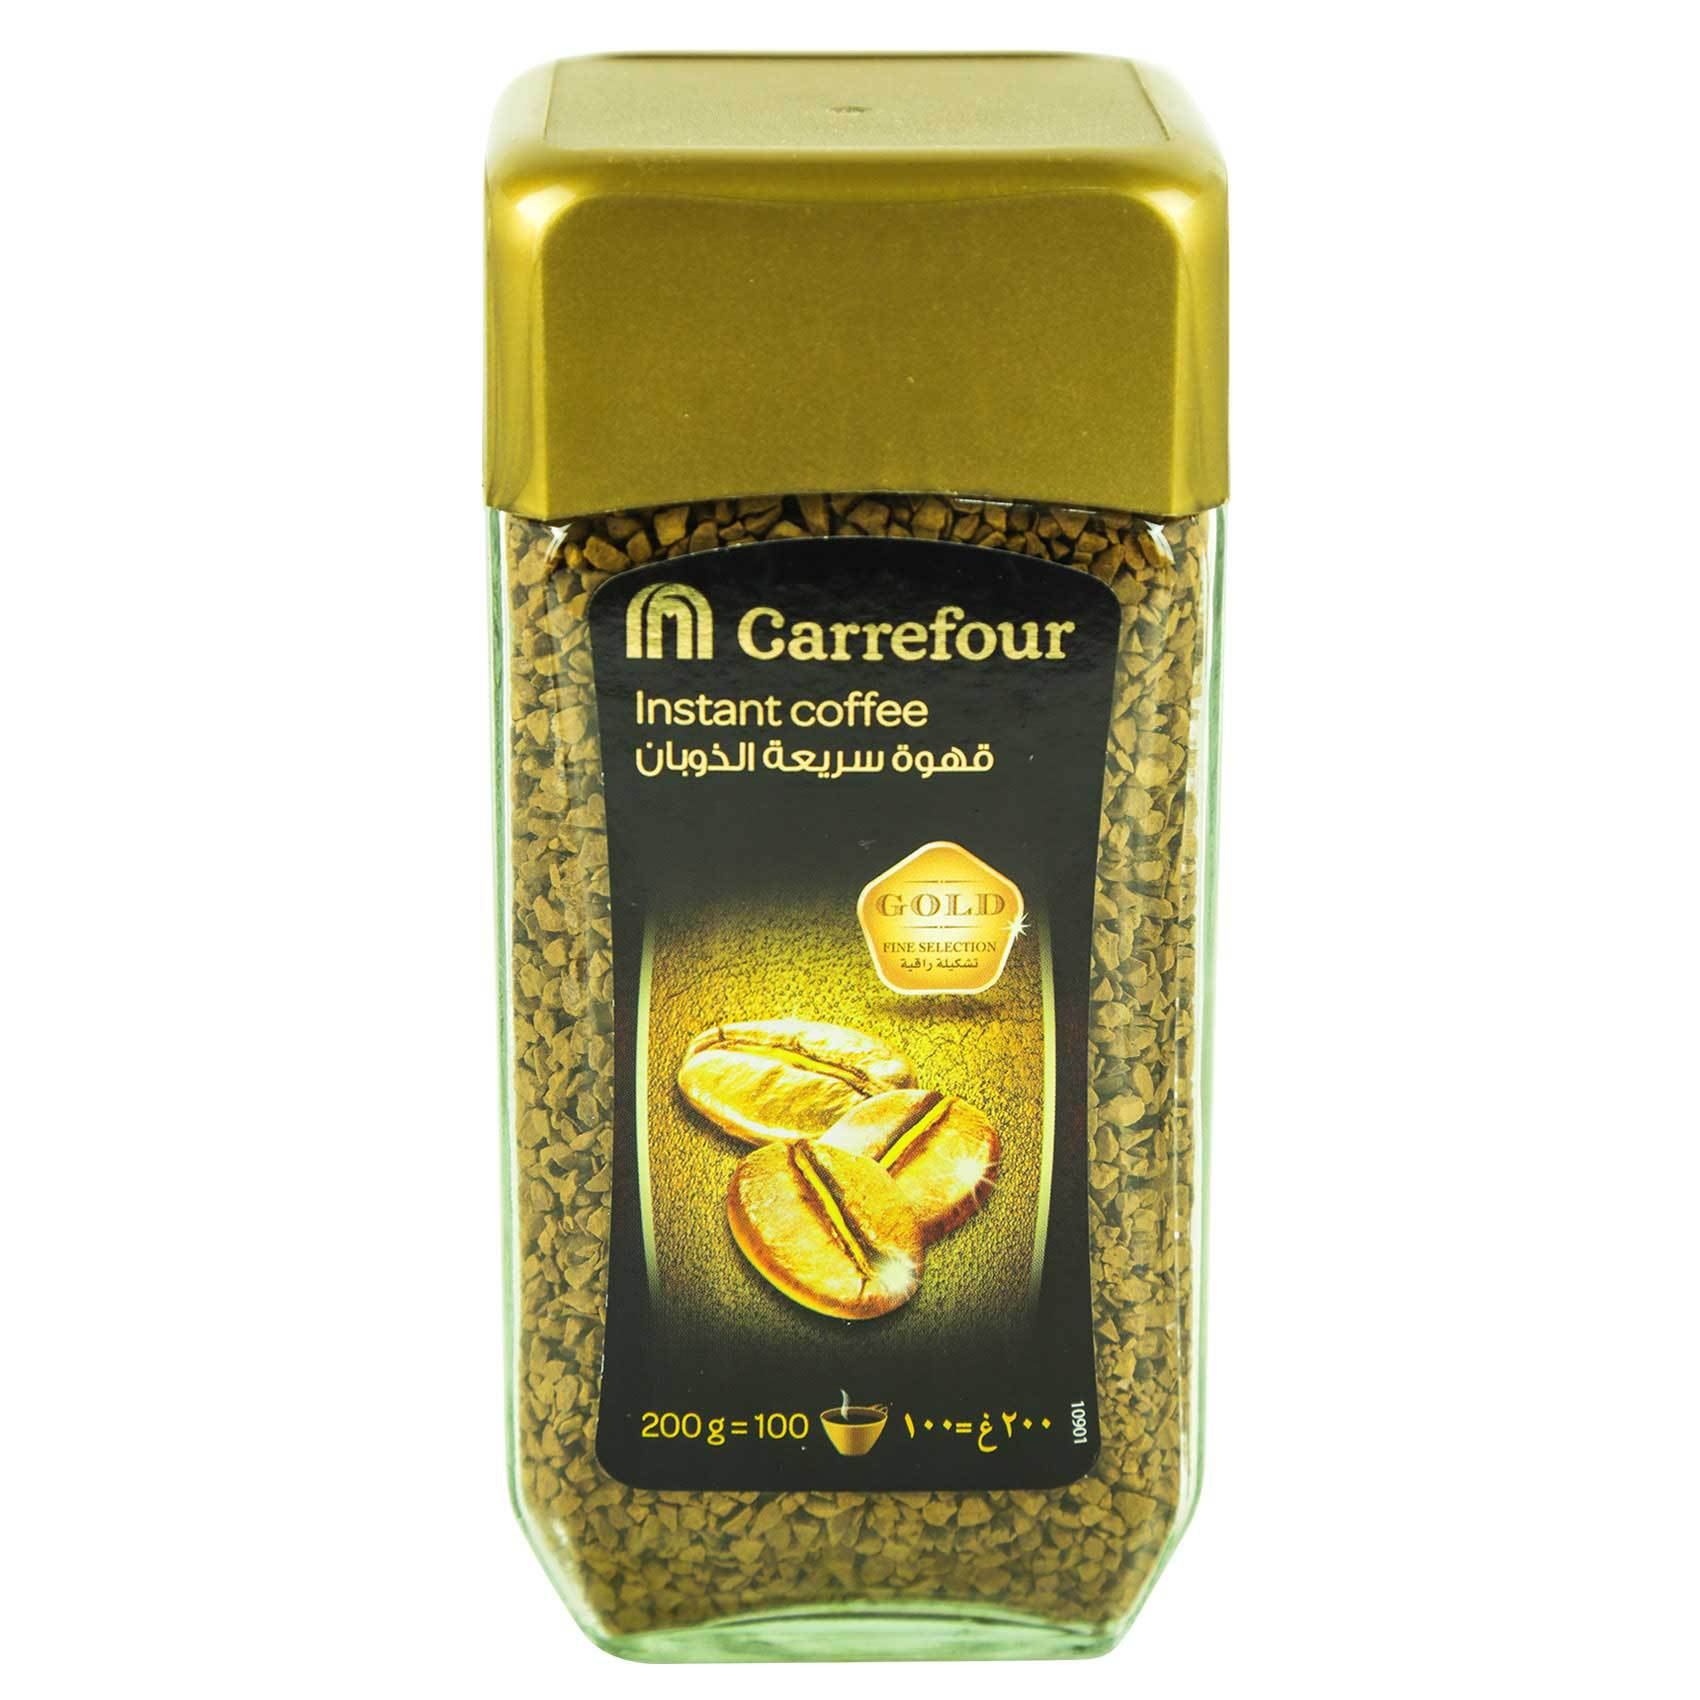 CRF GOLD INSTANT COFFEE 200G